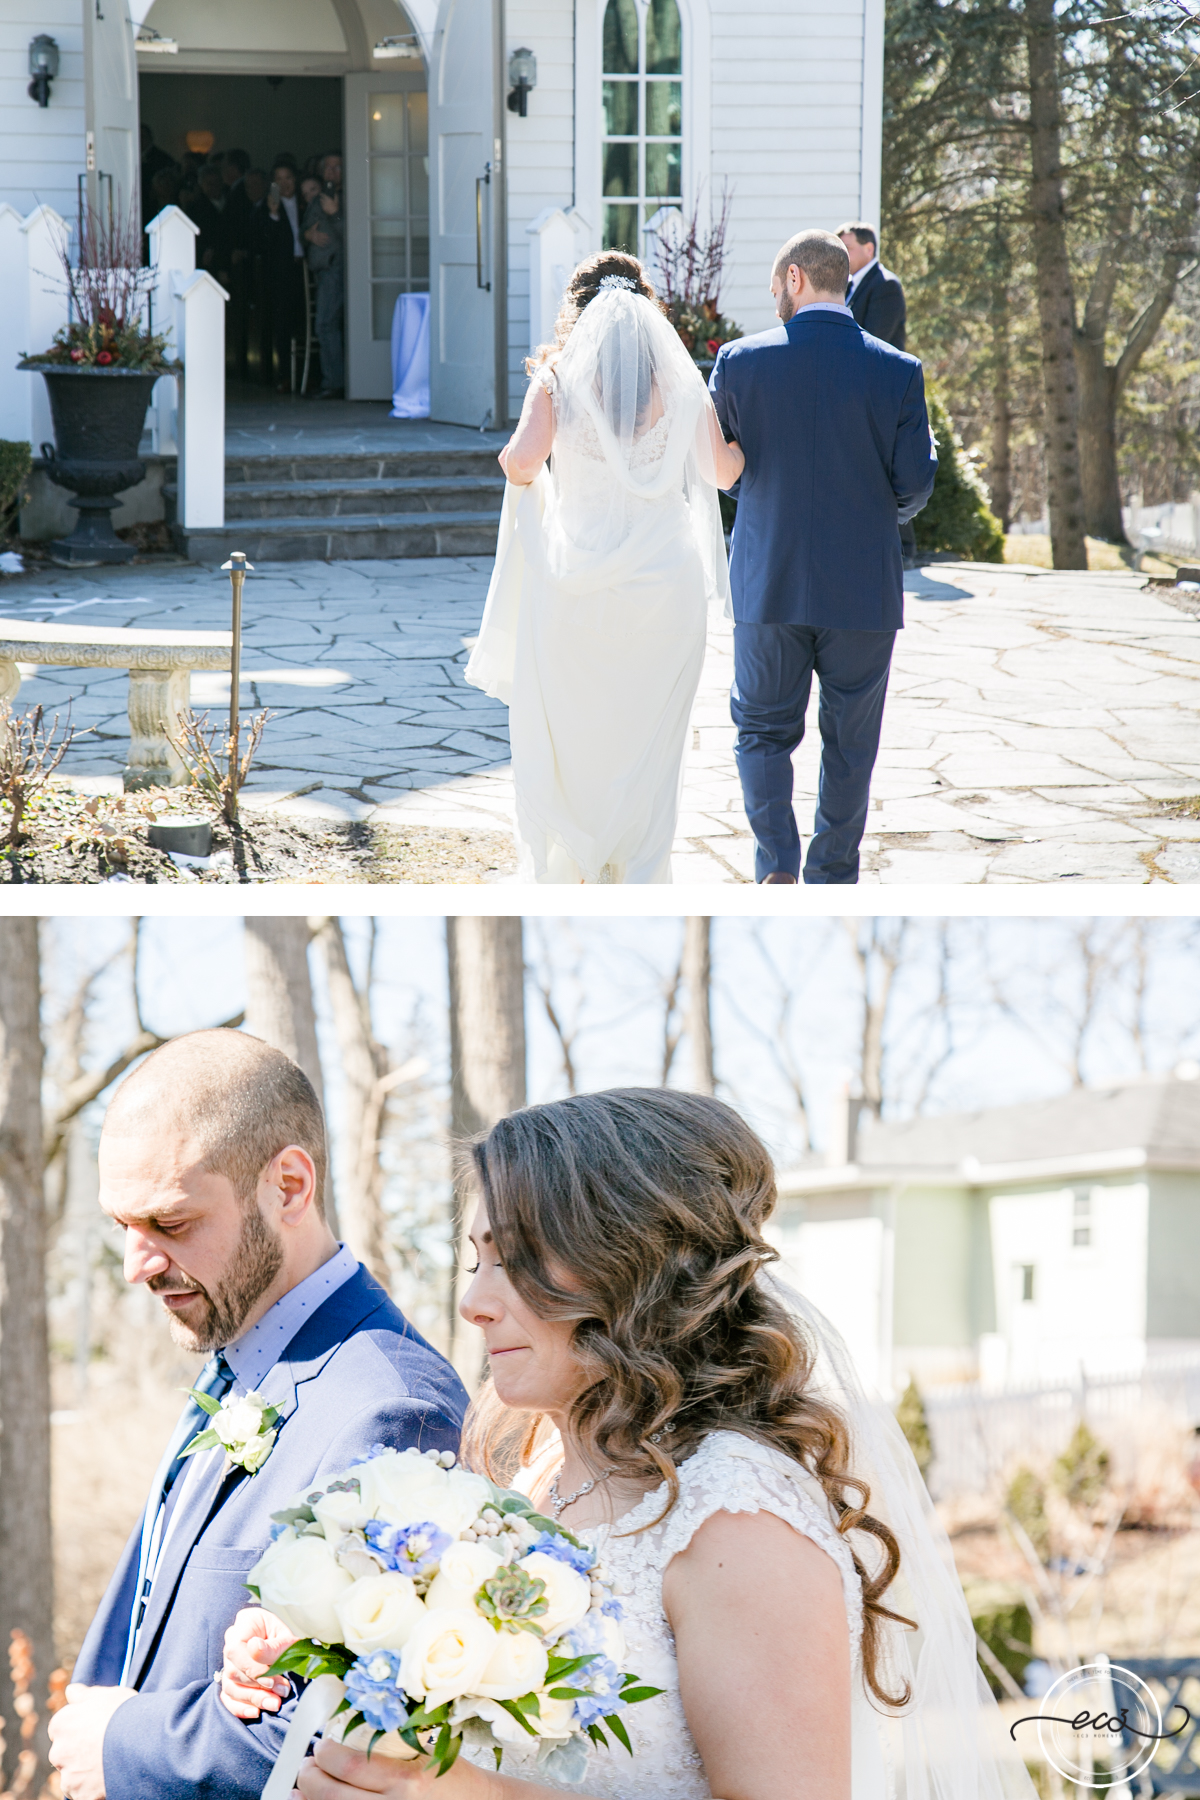 When the moment is becoming real just steps away from the altar, just remember to breathe like our beautiful bride and her brother.